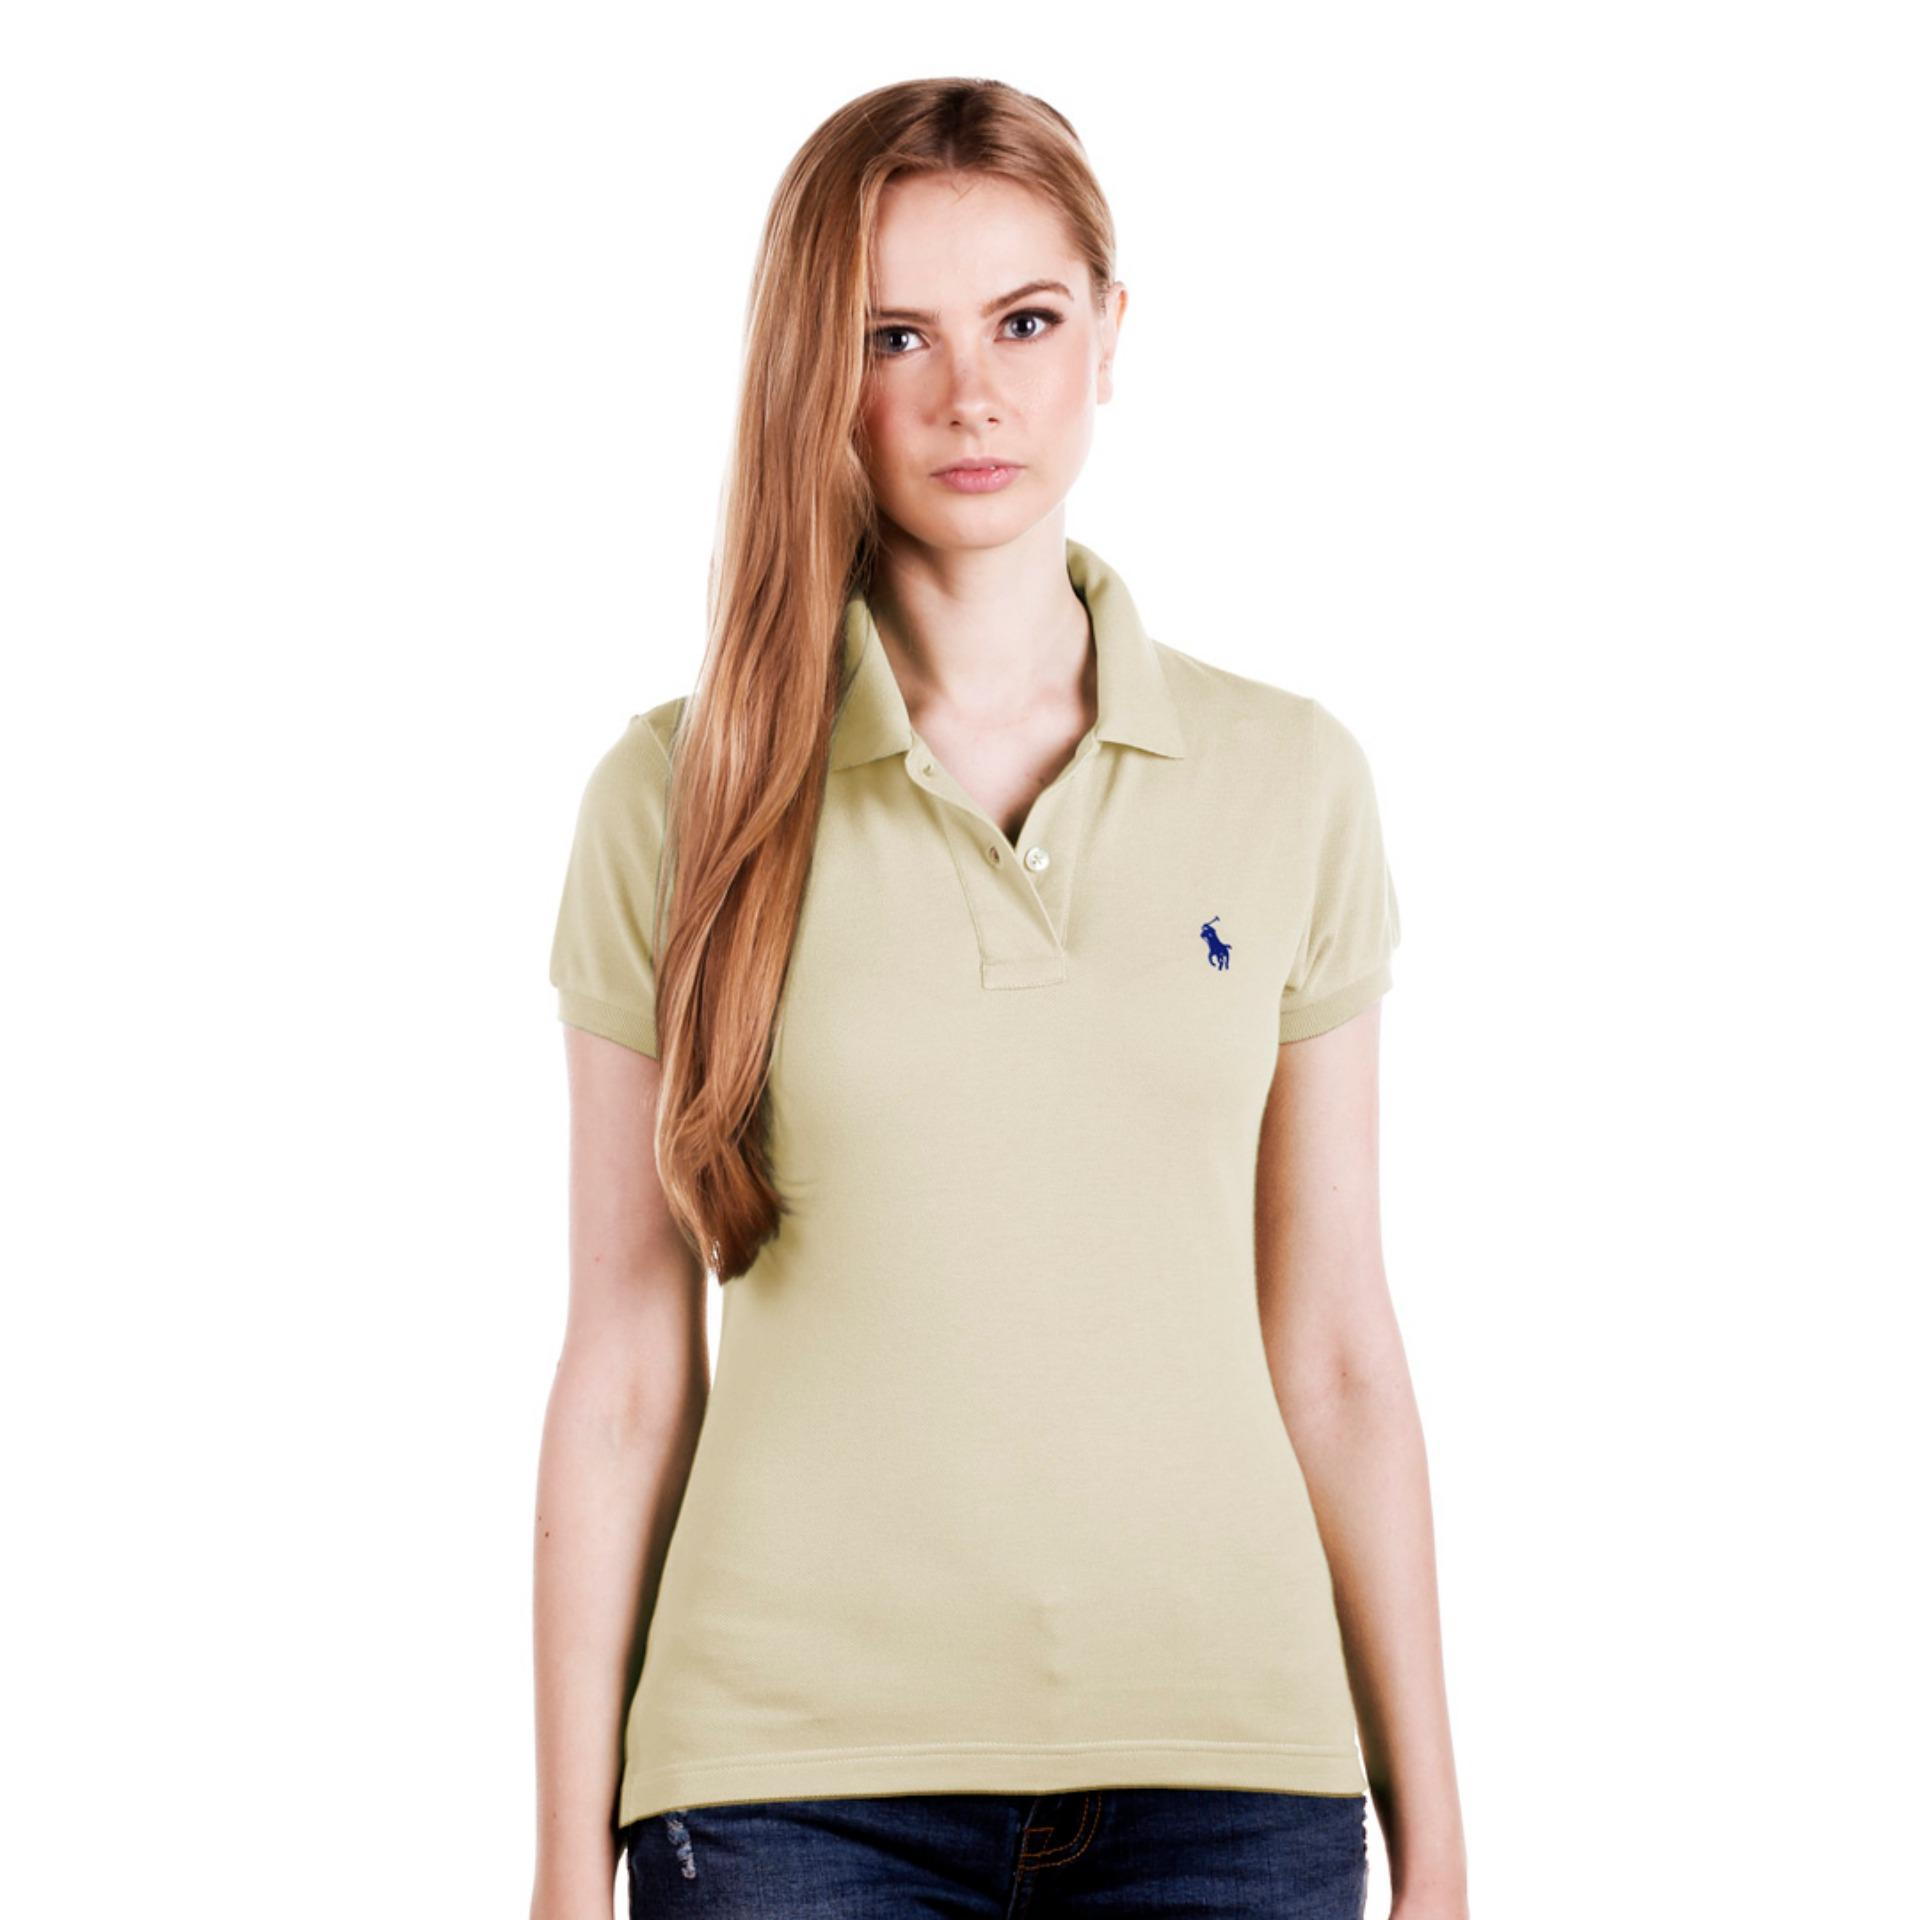 POLO RALPH LAUREN - POLO SHIRT CLASSIC FIT S/S CREAM LADIES